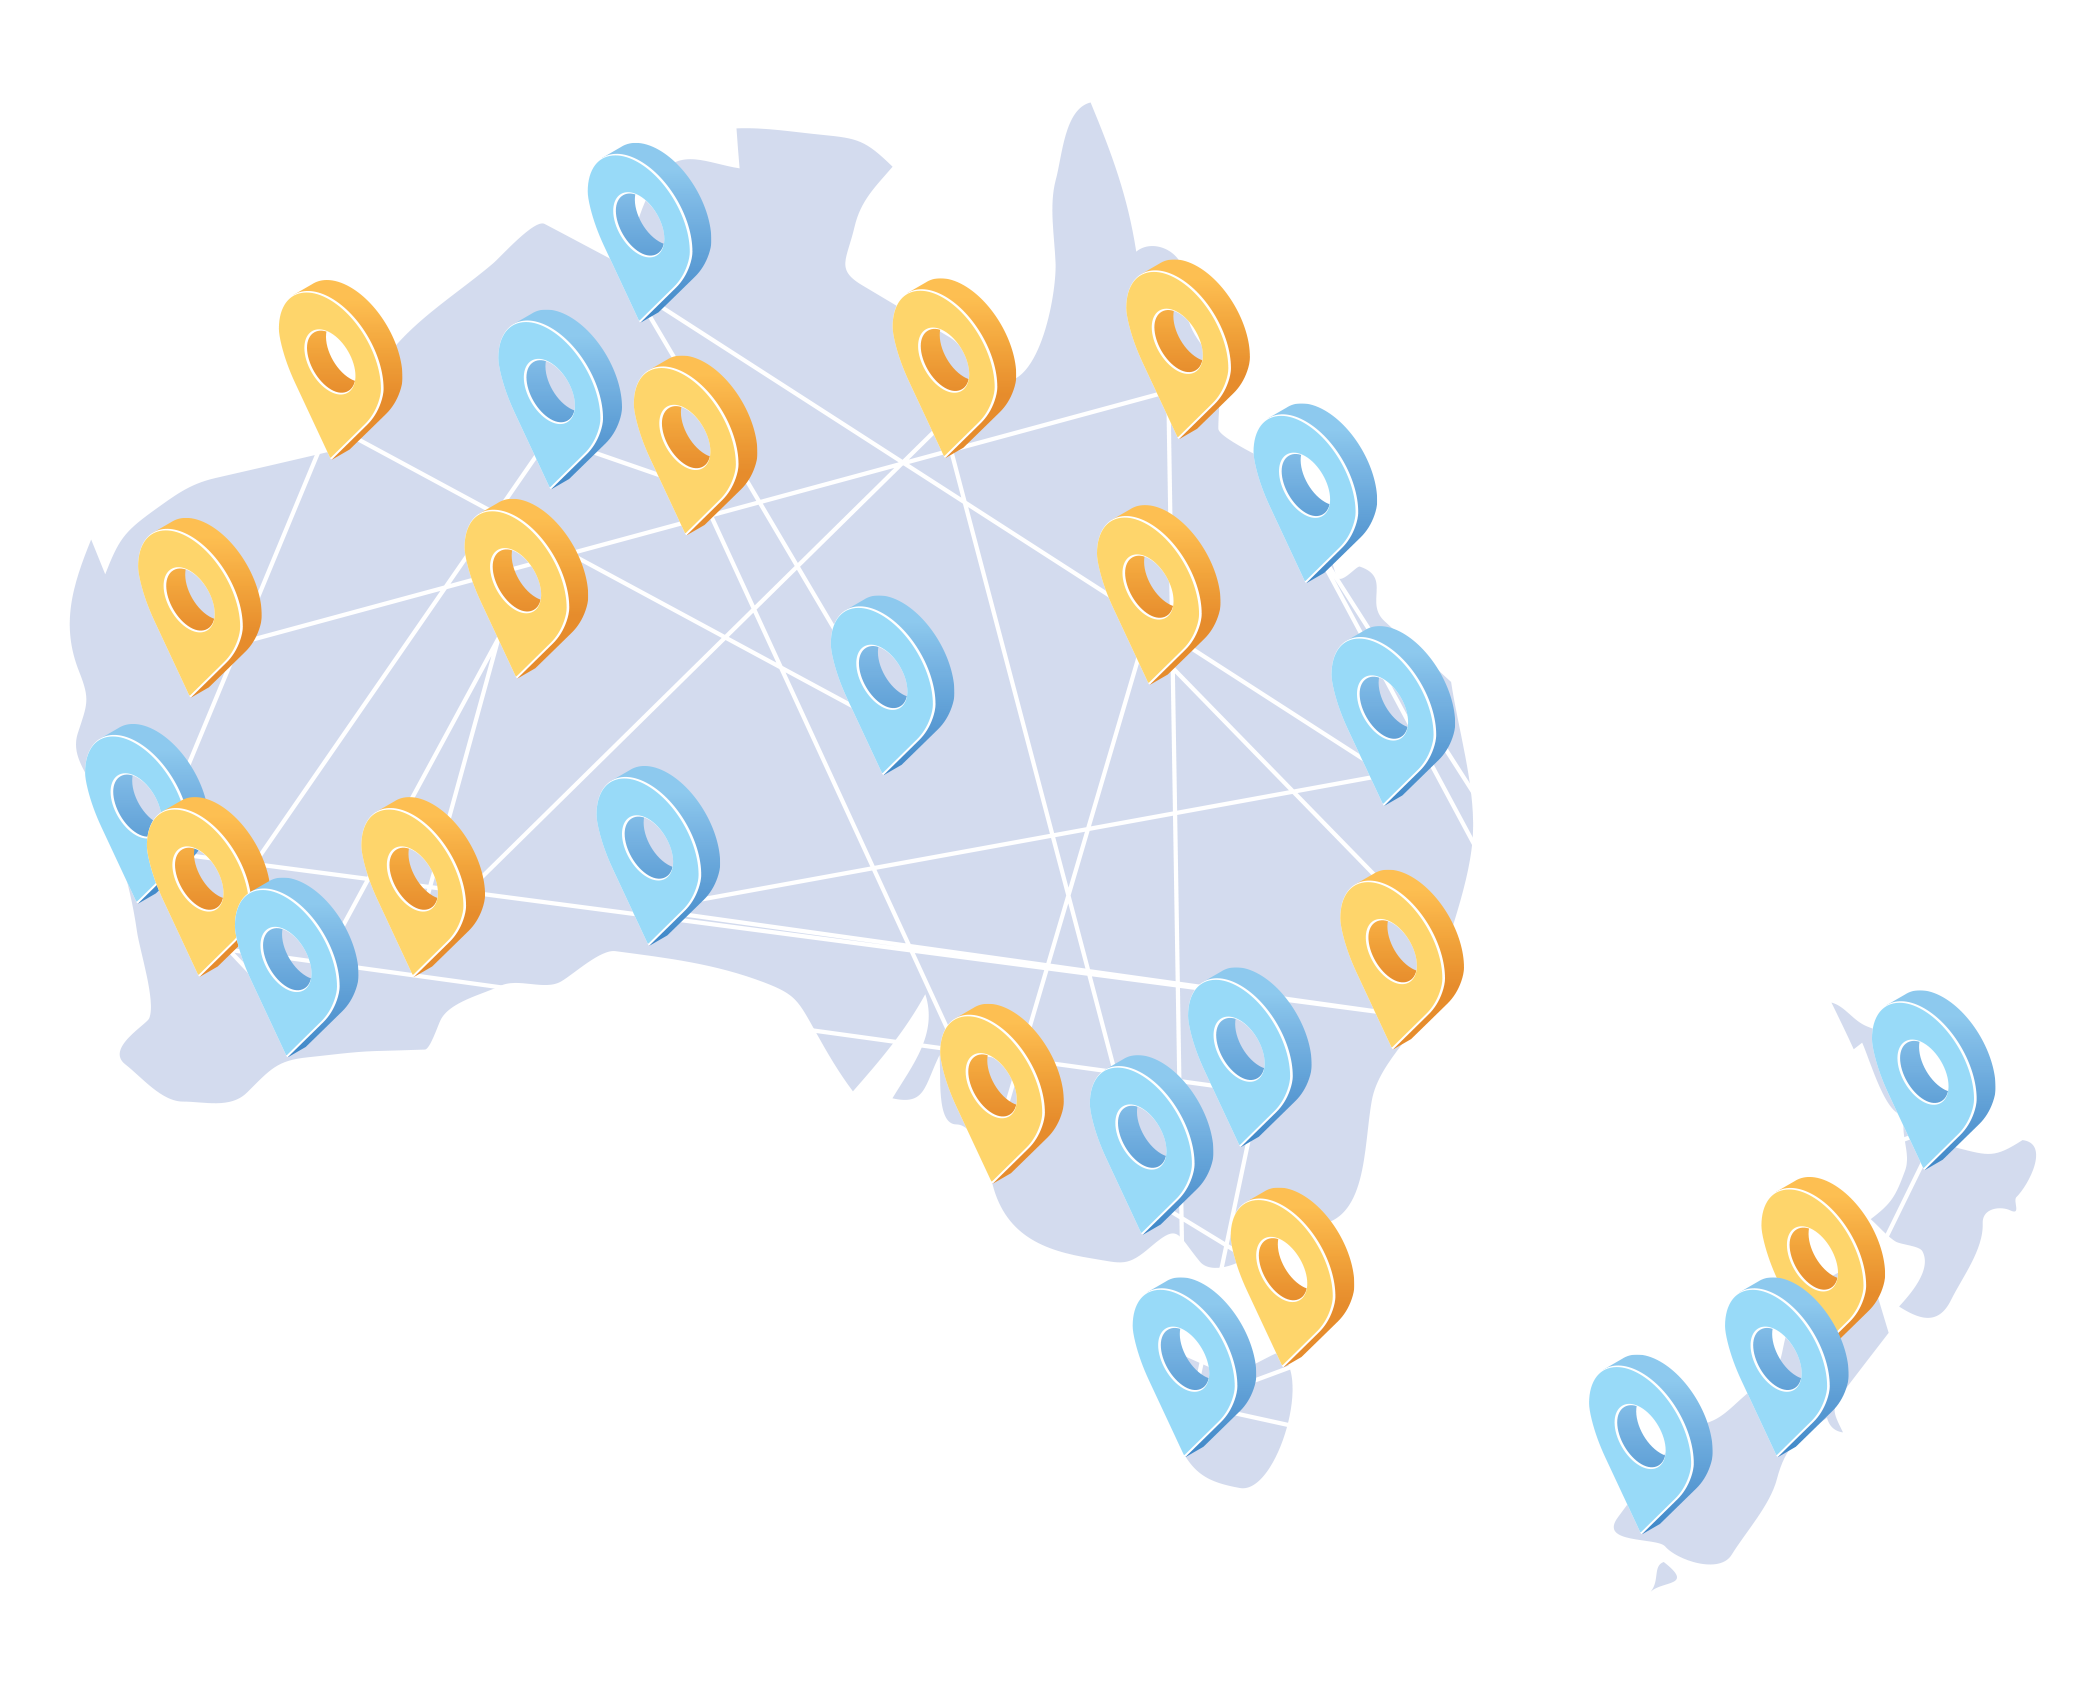 Pharmx - Our network spans Australia and New Zealand